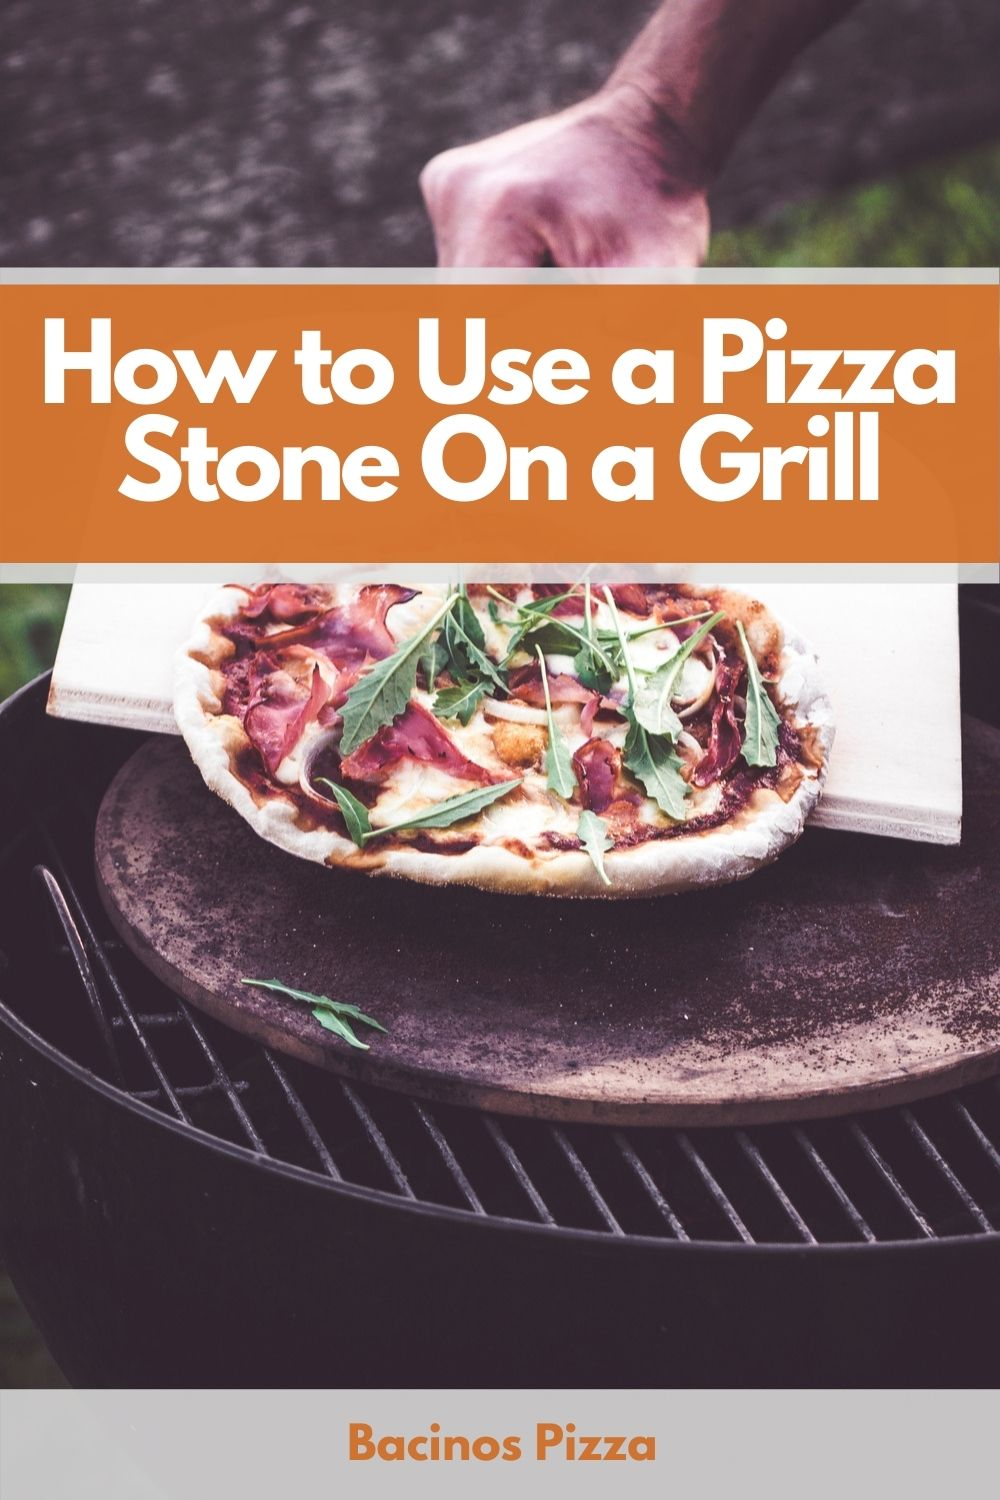 How to Use a Pizza Stone On a Grill